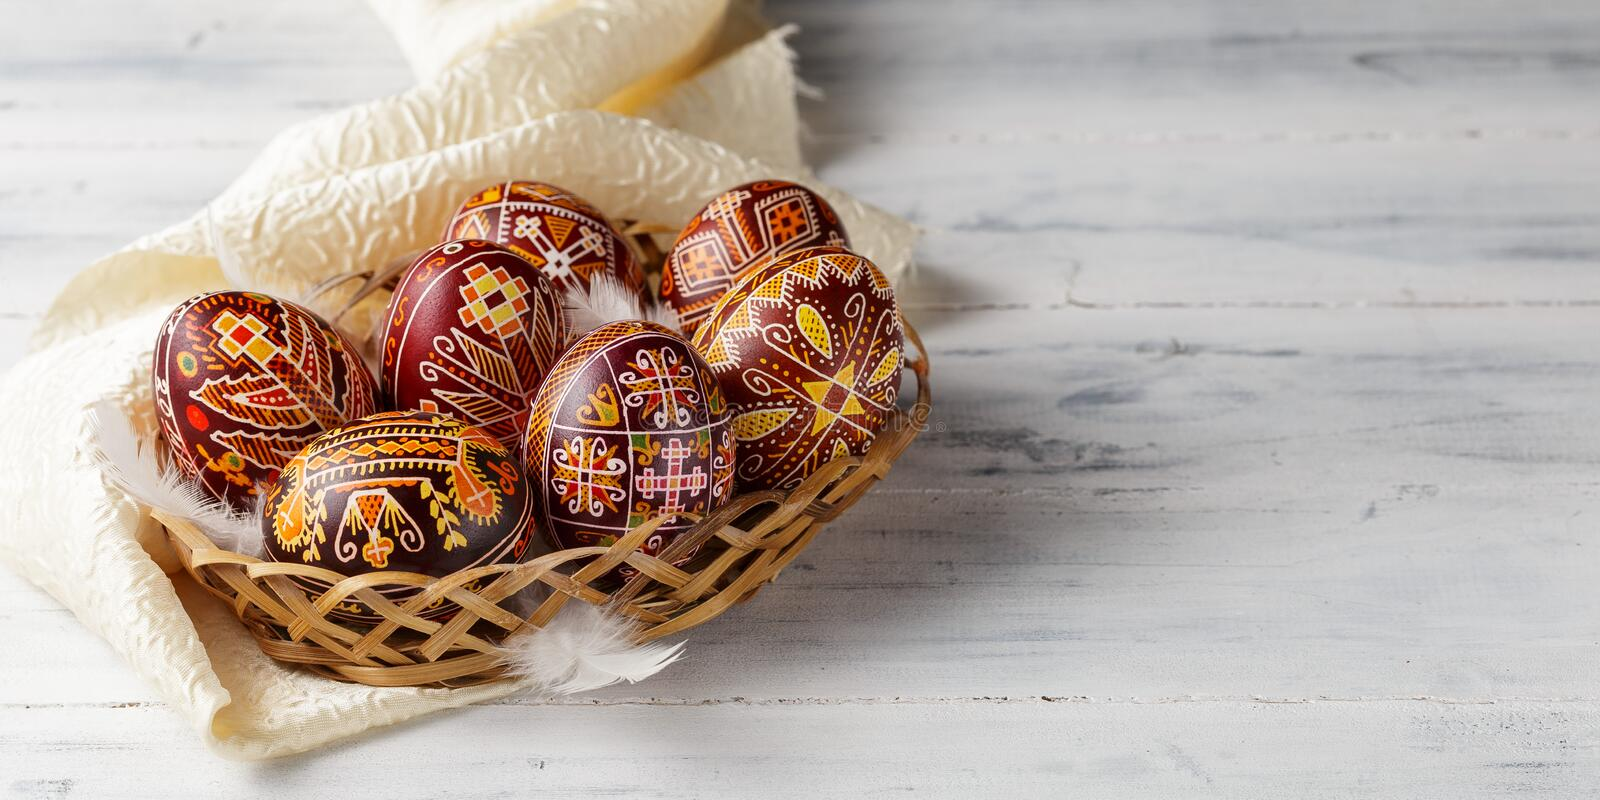 Easter eggs decorated with wax resist technique. Pysanky, Ukrainian Easter eggs decorated with wax-resist dyeing technique, white wooden background, copy space royalty free stock photography